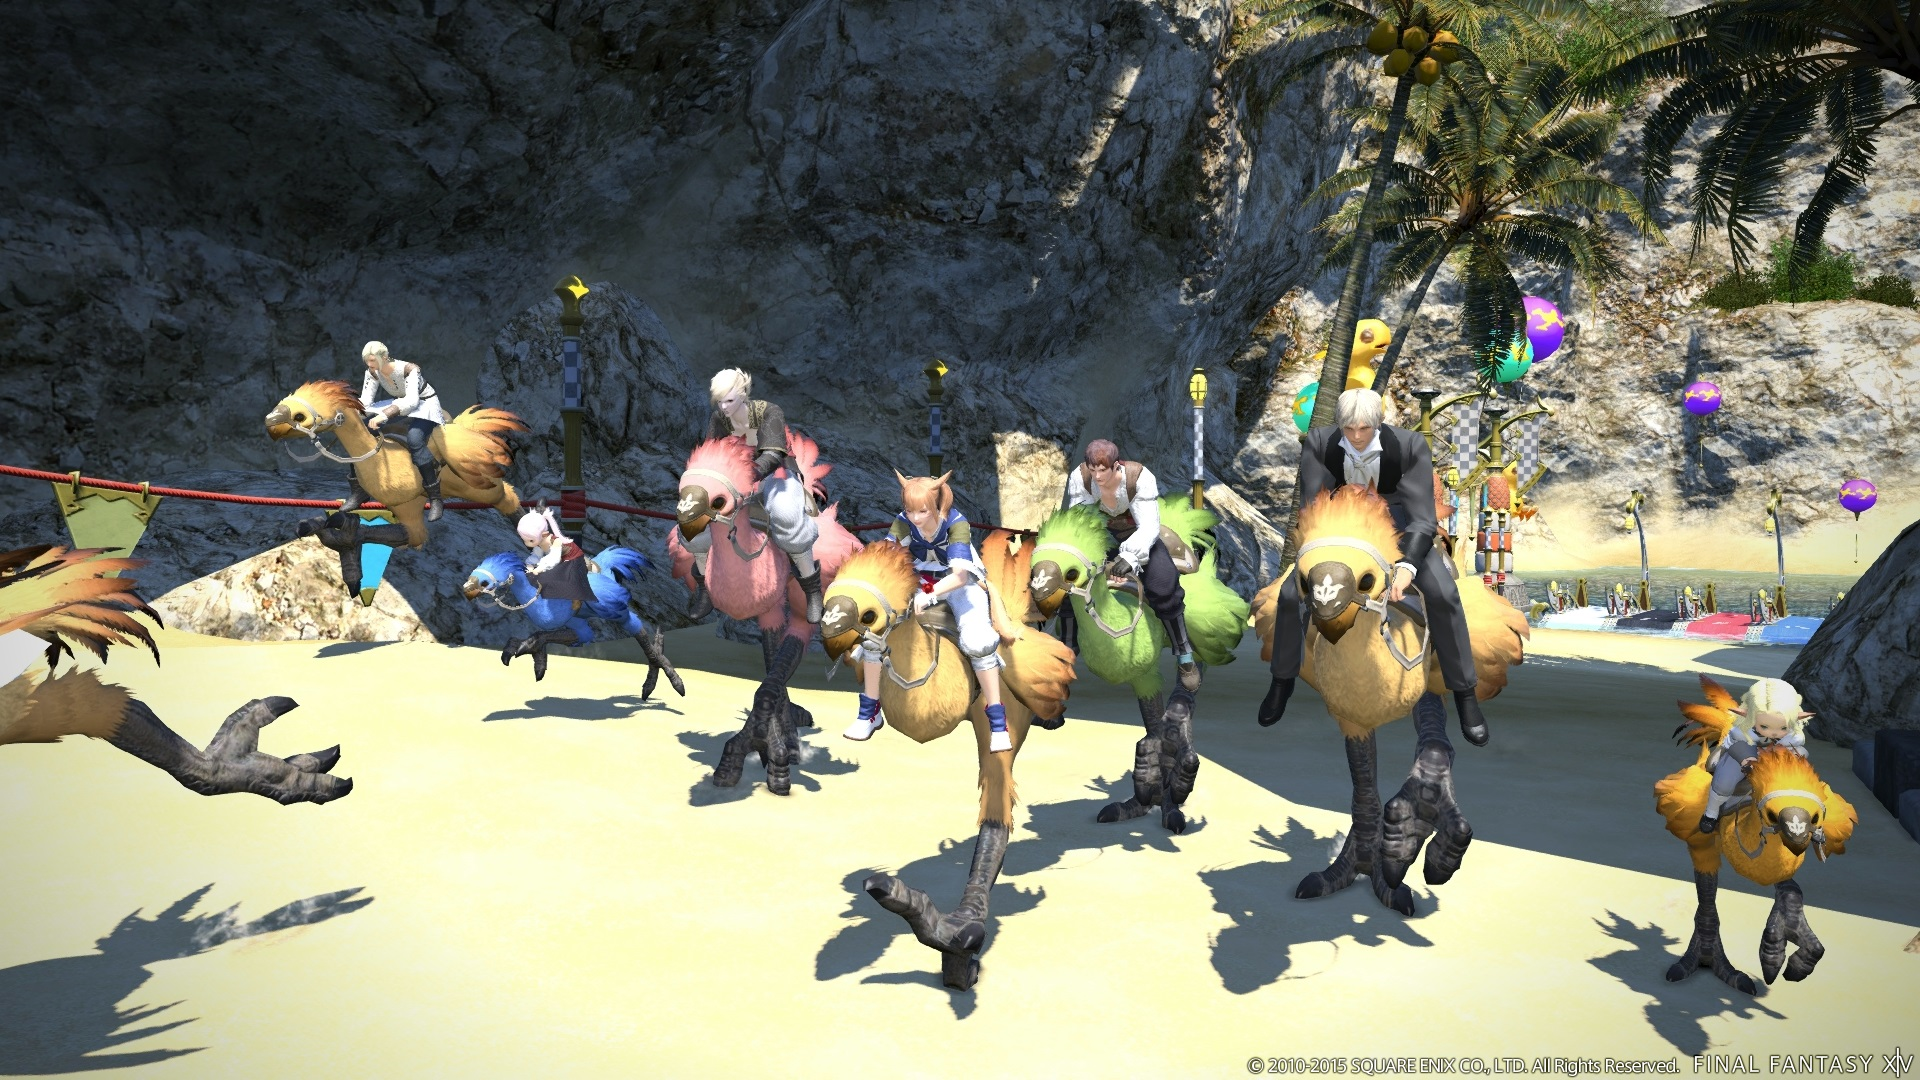 Final Fantasy XIV 2 51 Patch Adds Gold Saucer, Triple Triad